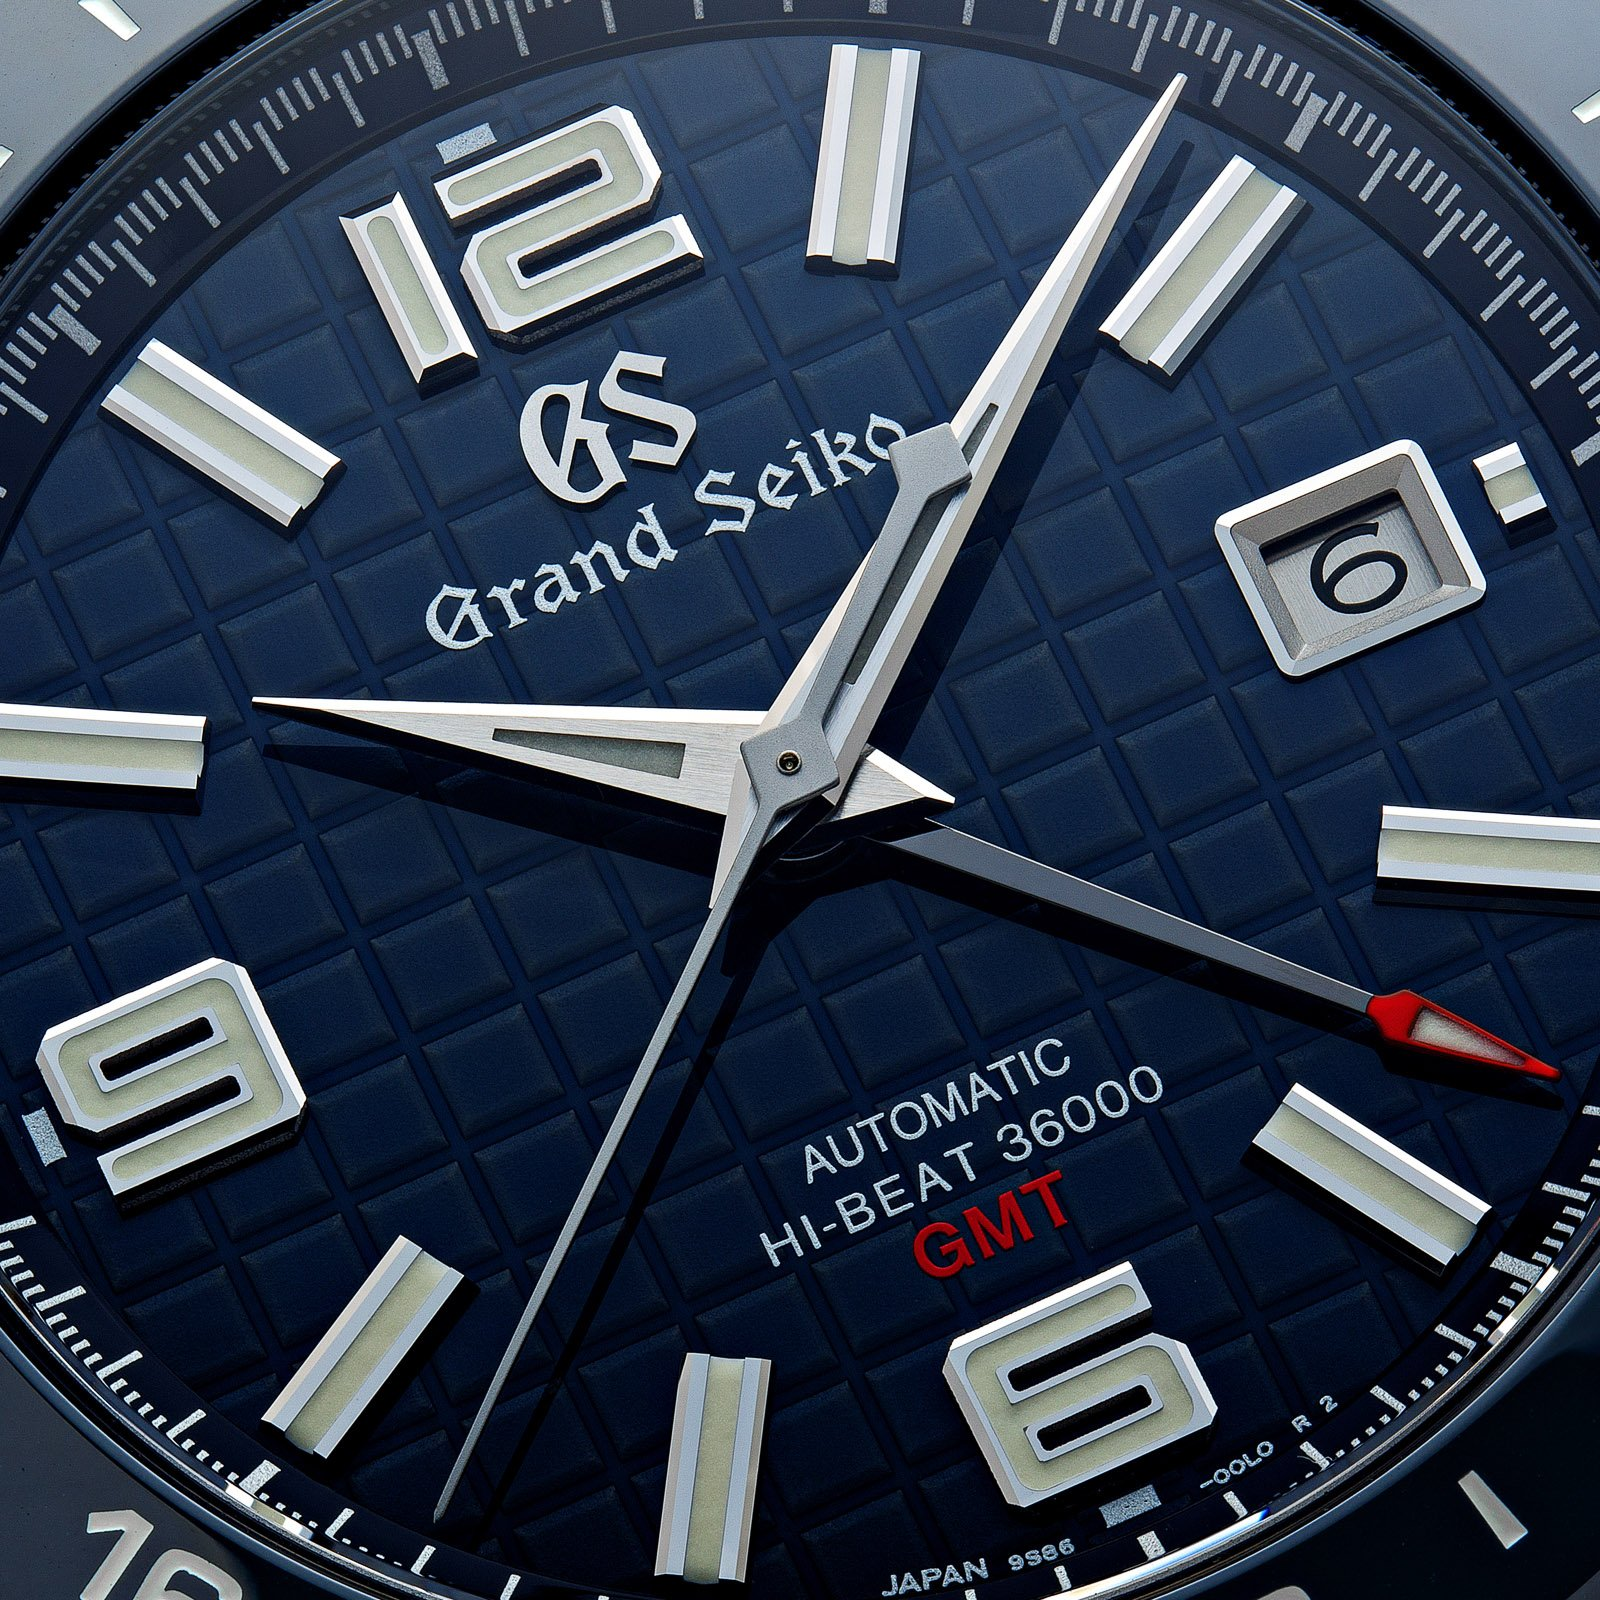 Grand Seiko SBGJ233 - macro detail of the blue patterned dial.